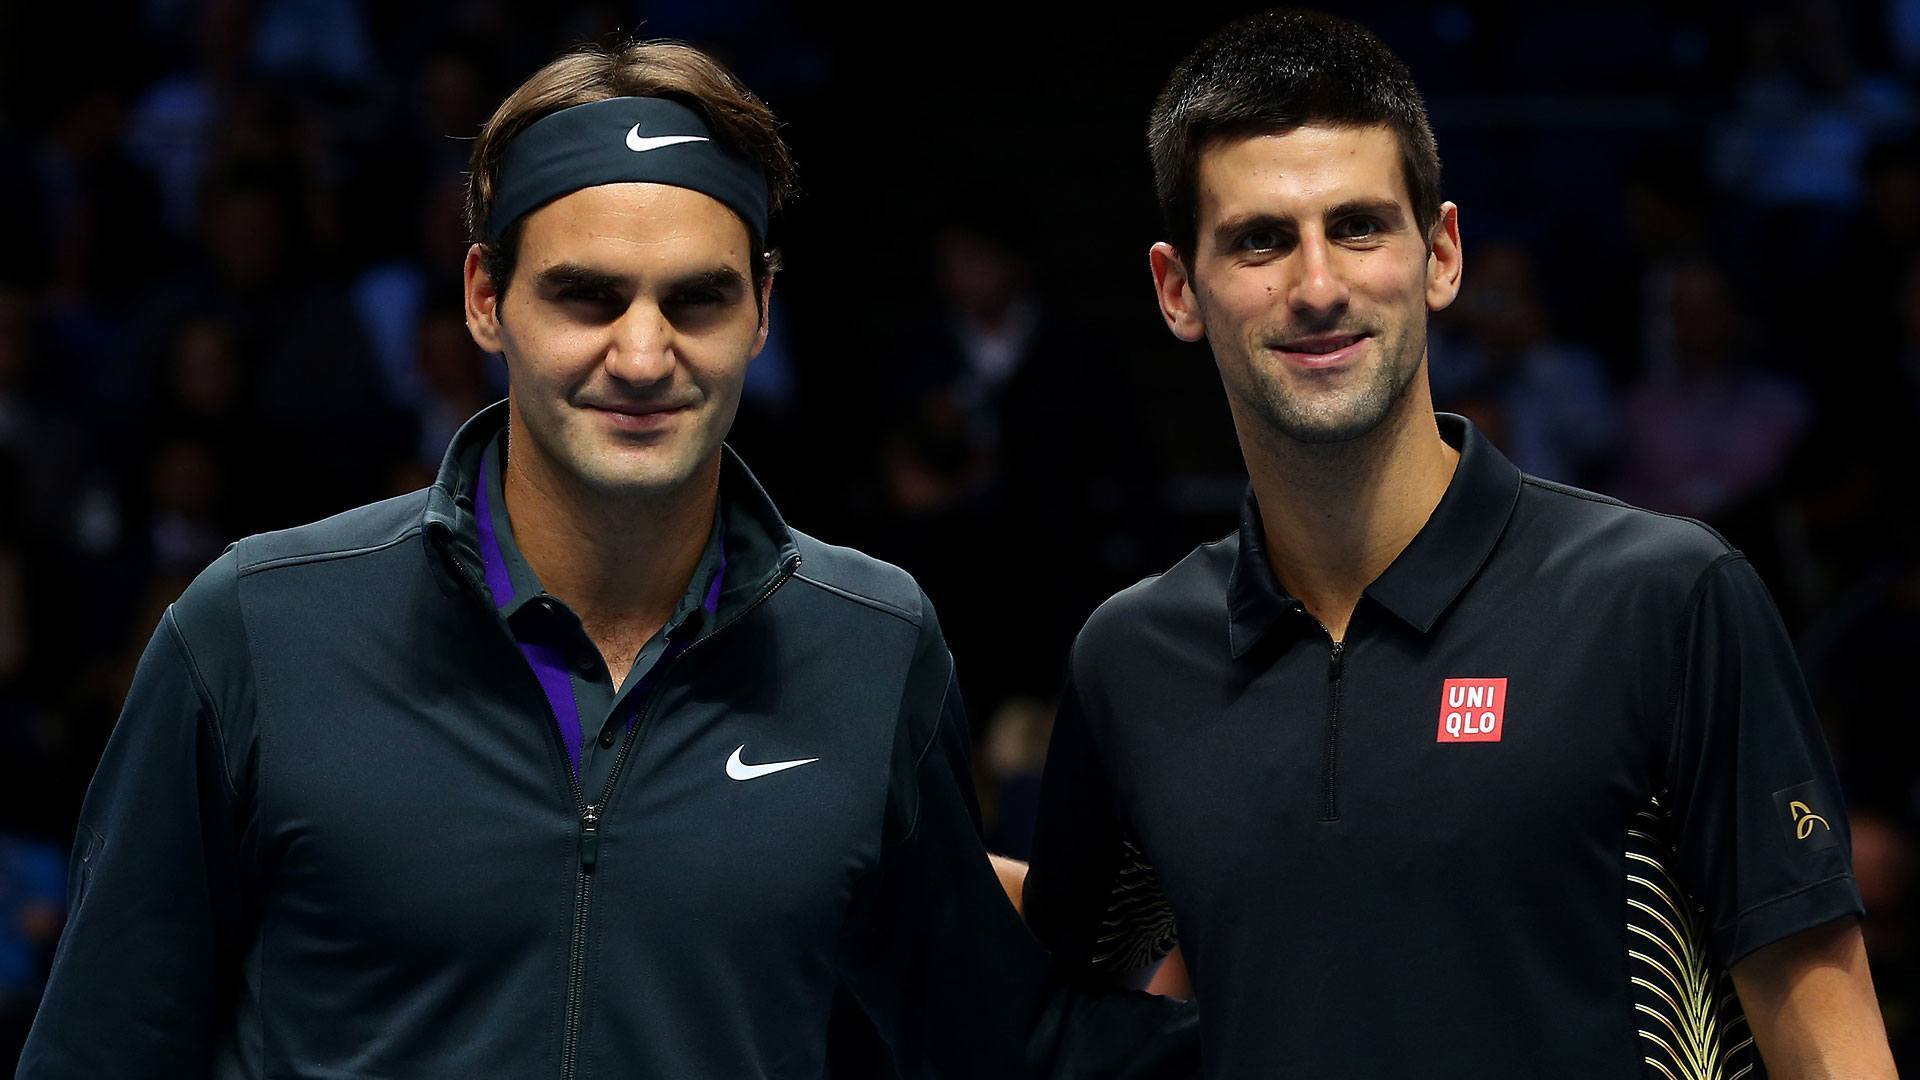 Wawrinka Out: Roger Federer vs Novak Djokovic: 2015 Rome ...